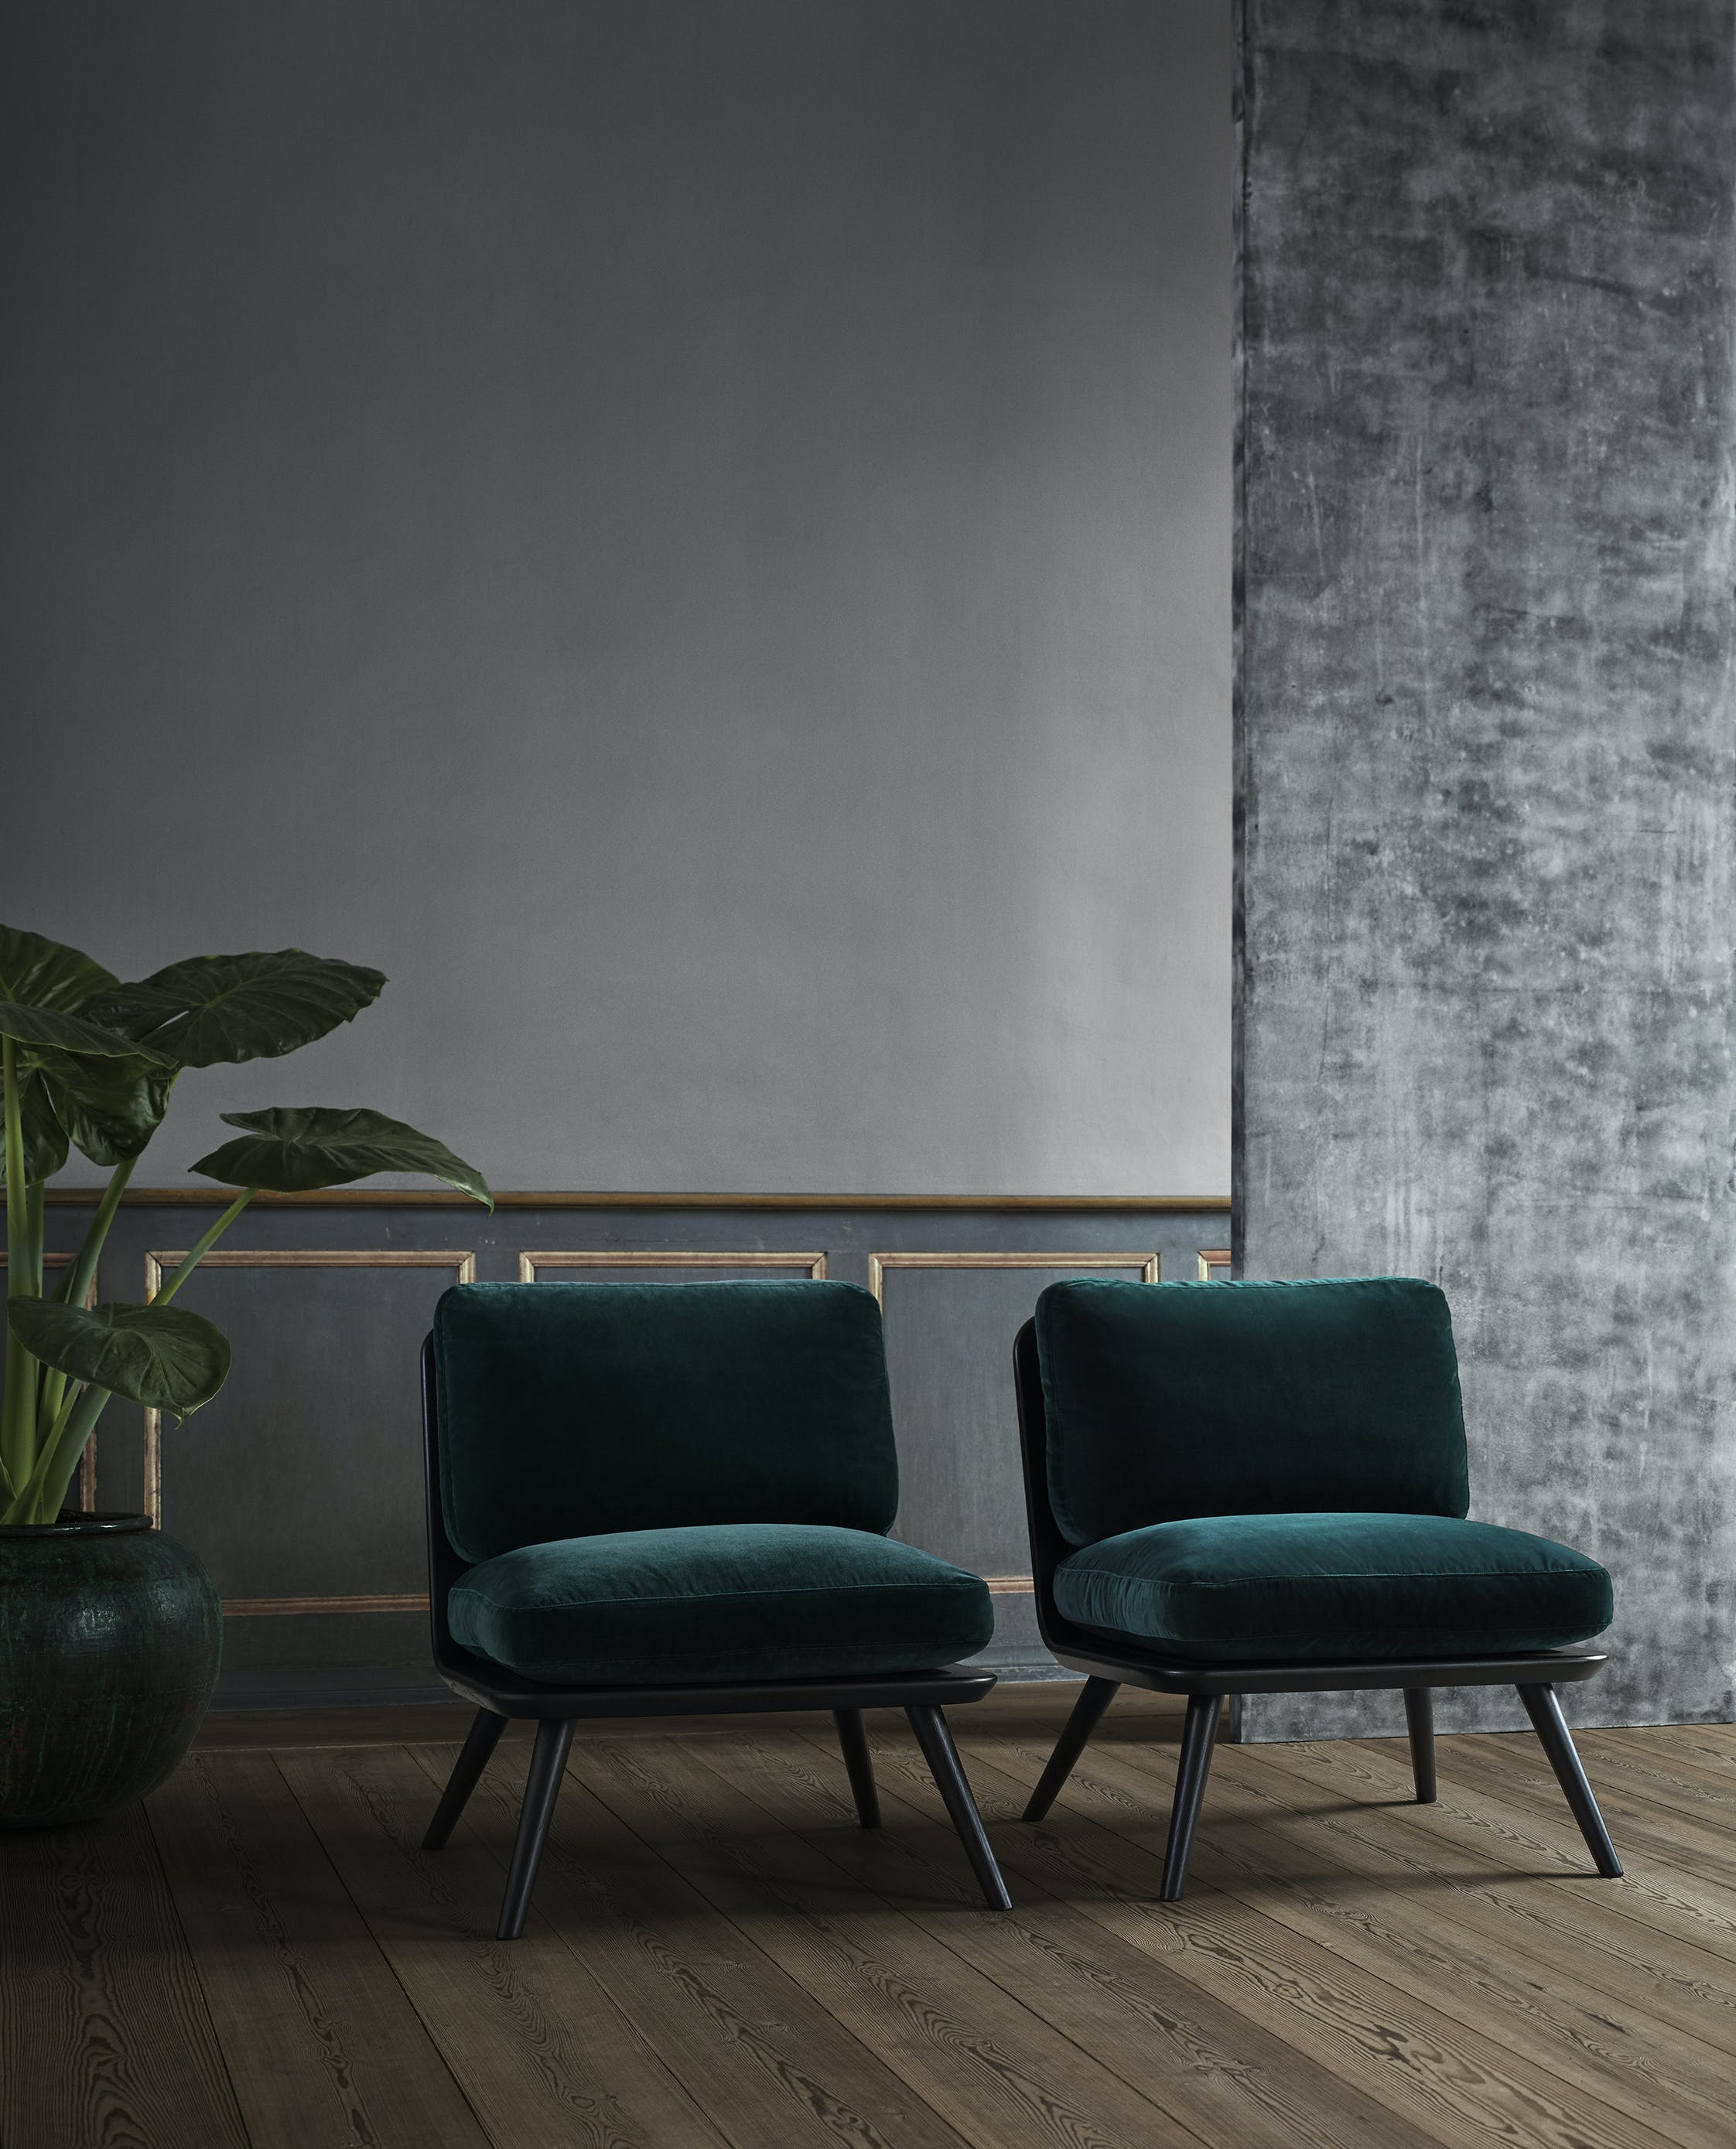 Sc 1711 Harald982 Blacklacquered Mood Rgb High